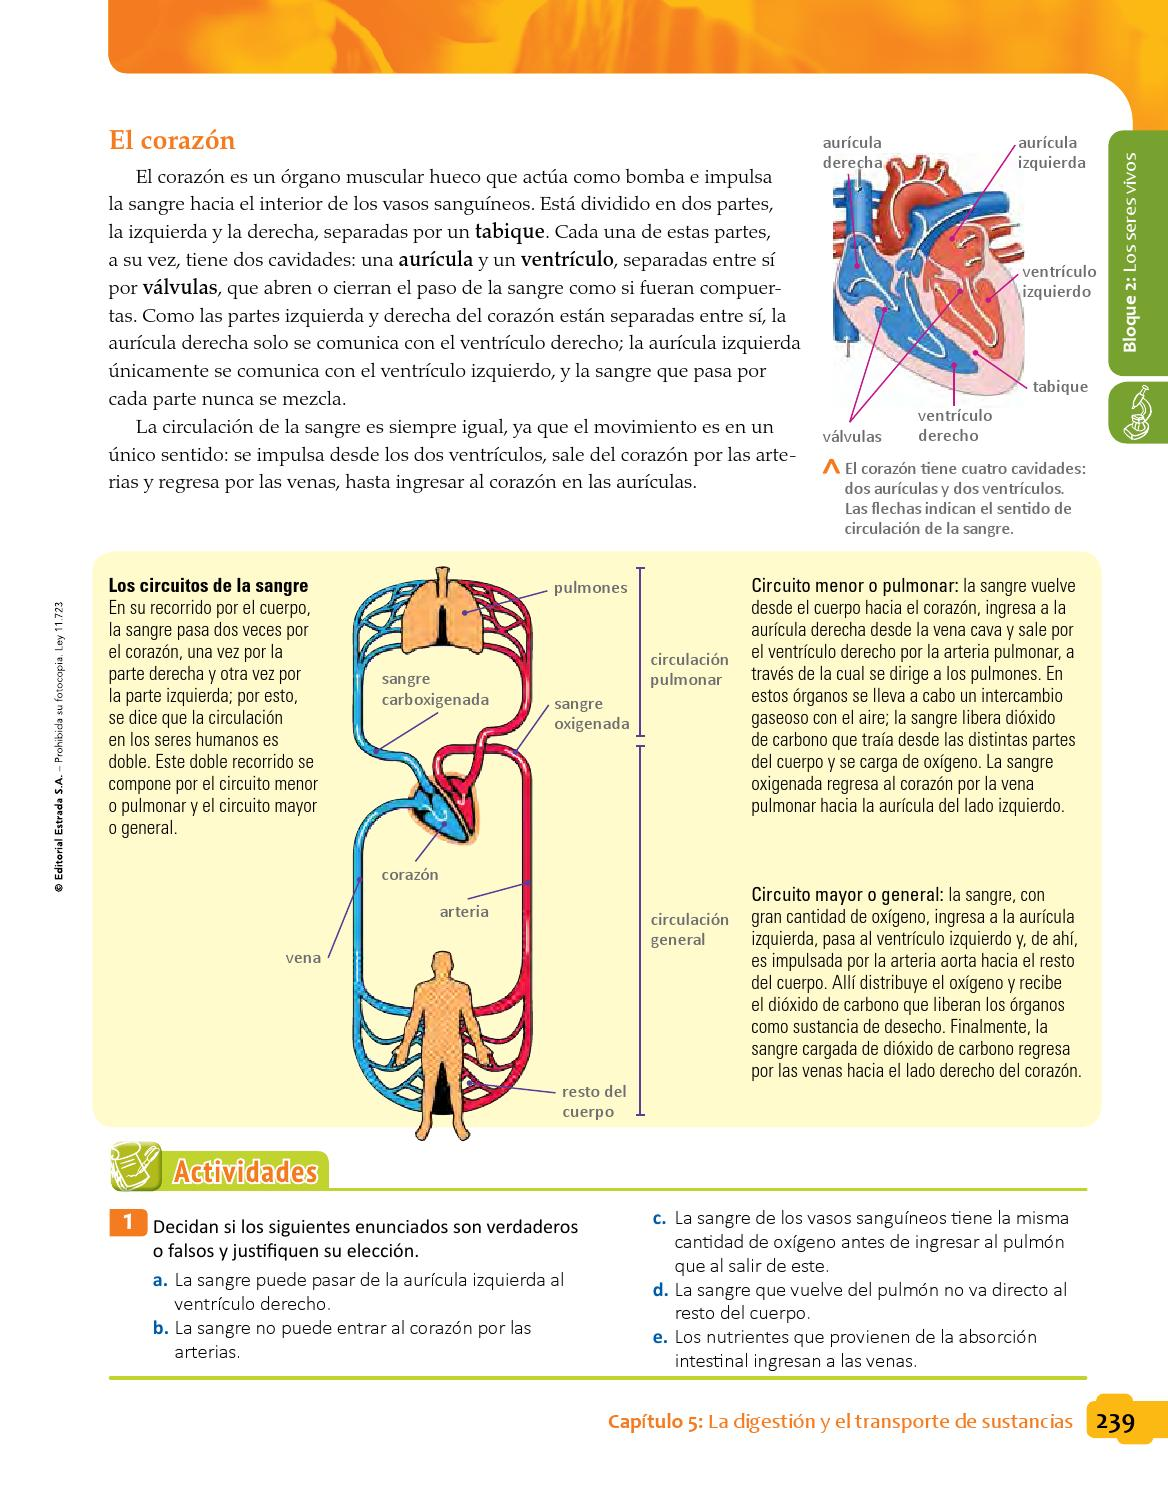 Circuito Sanguineo : Biciencias 6to bonaerense by macmillan publishers s.a. issuu